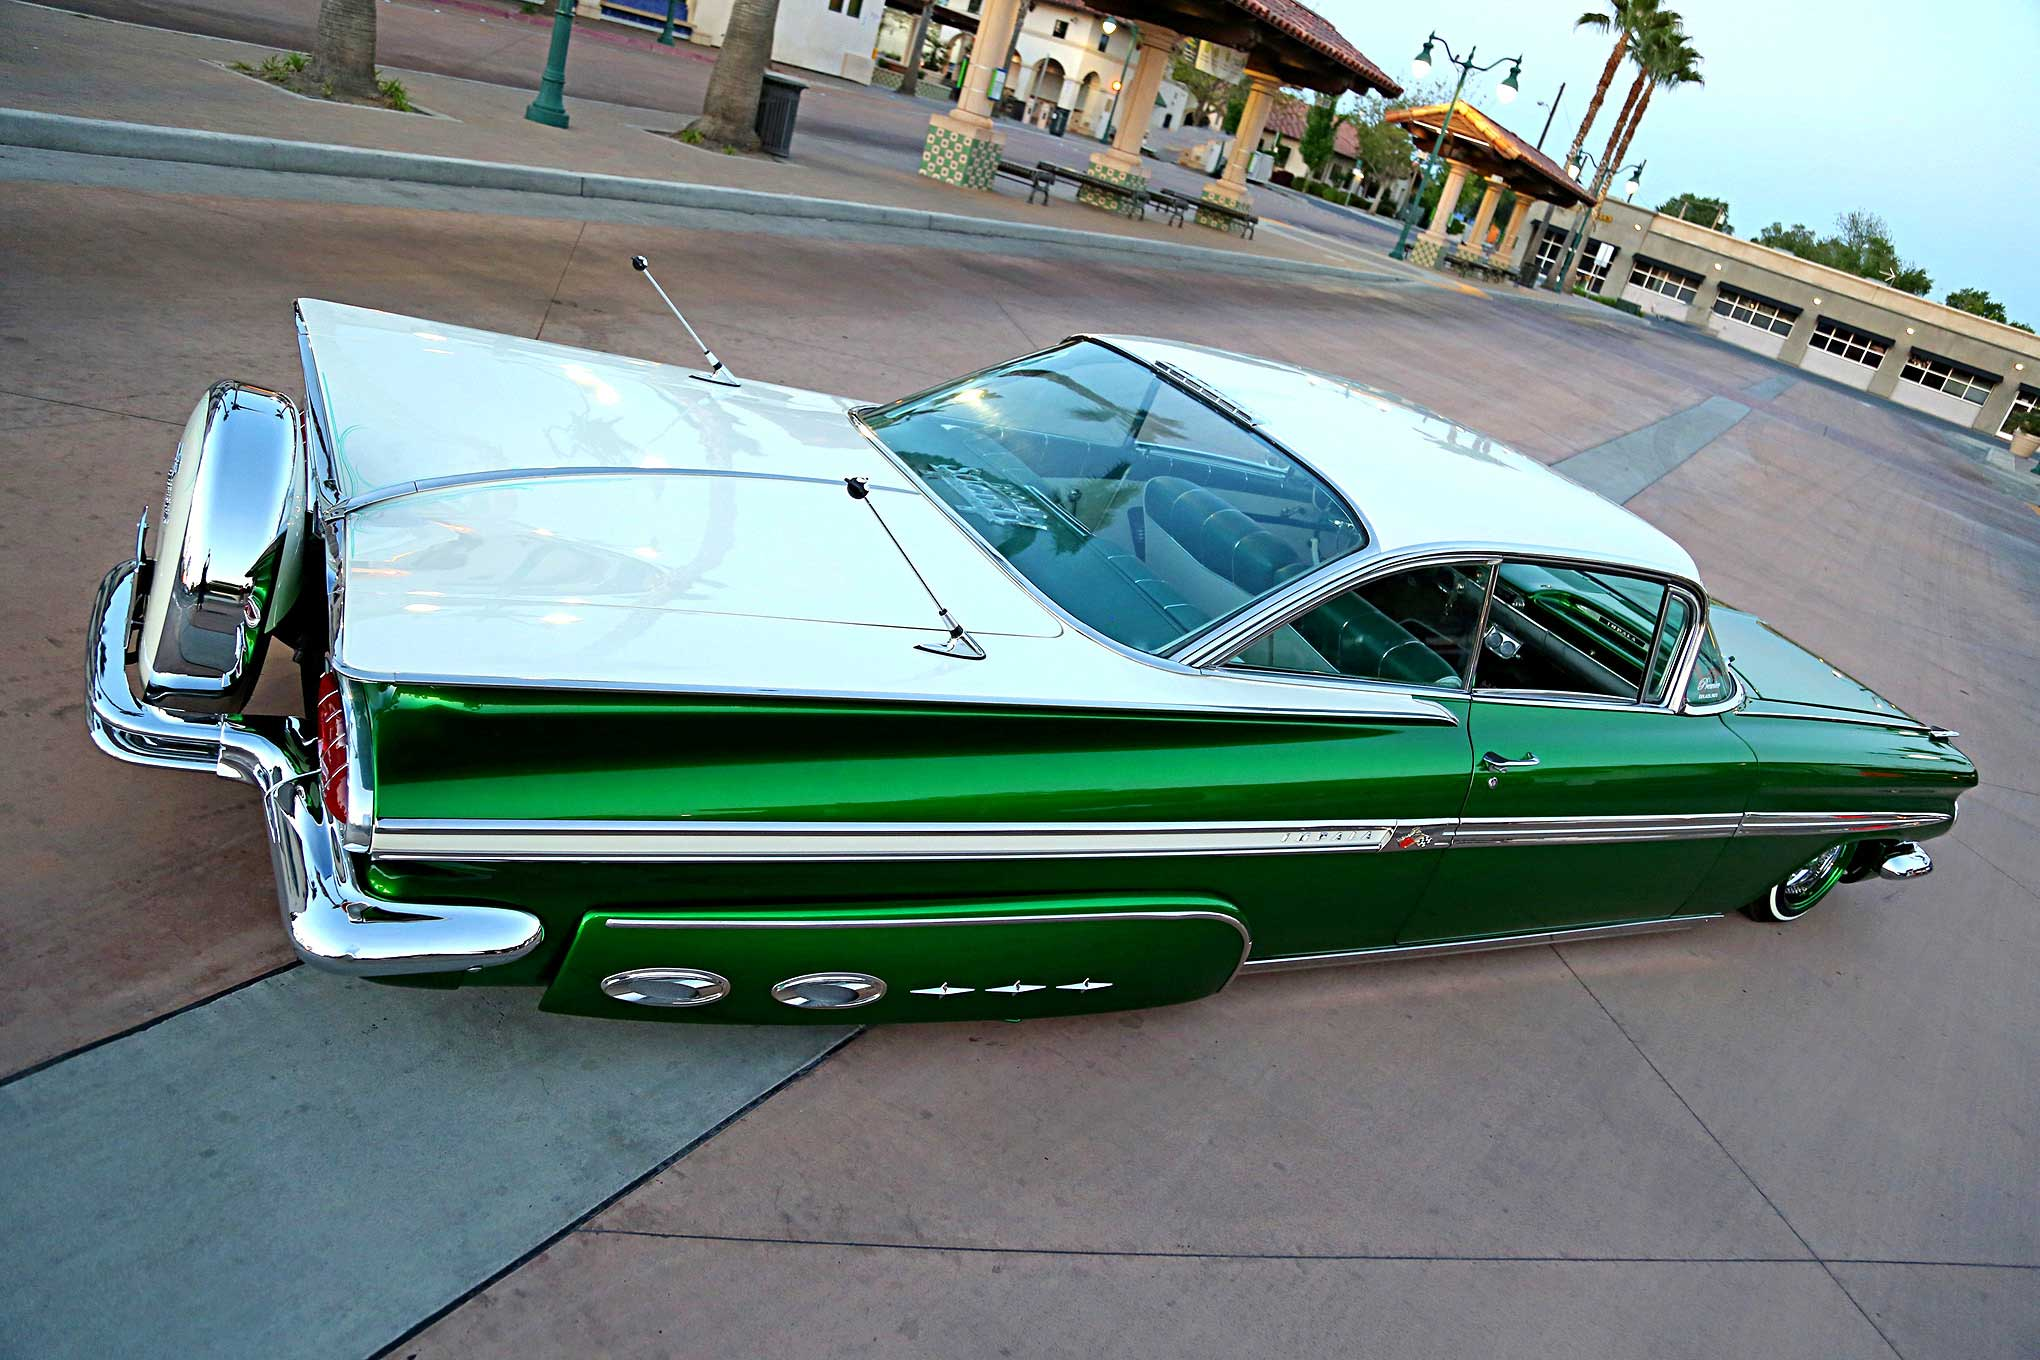 1959 Chevrolet Impala Paid in Full